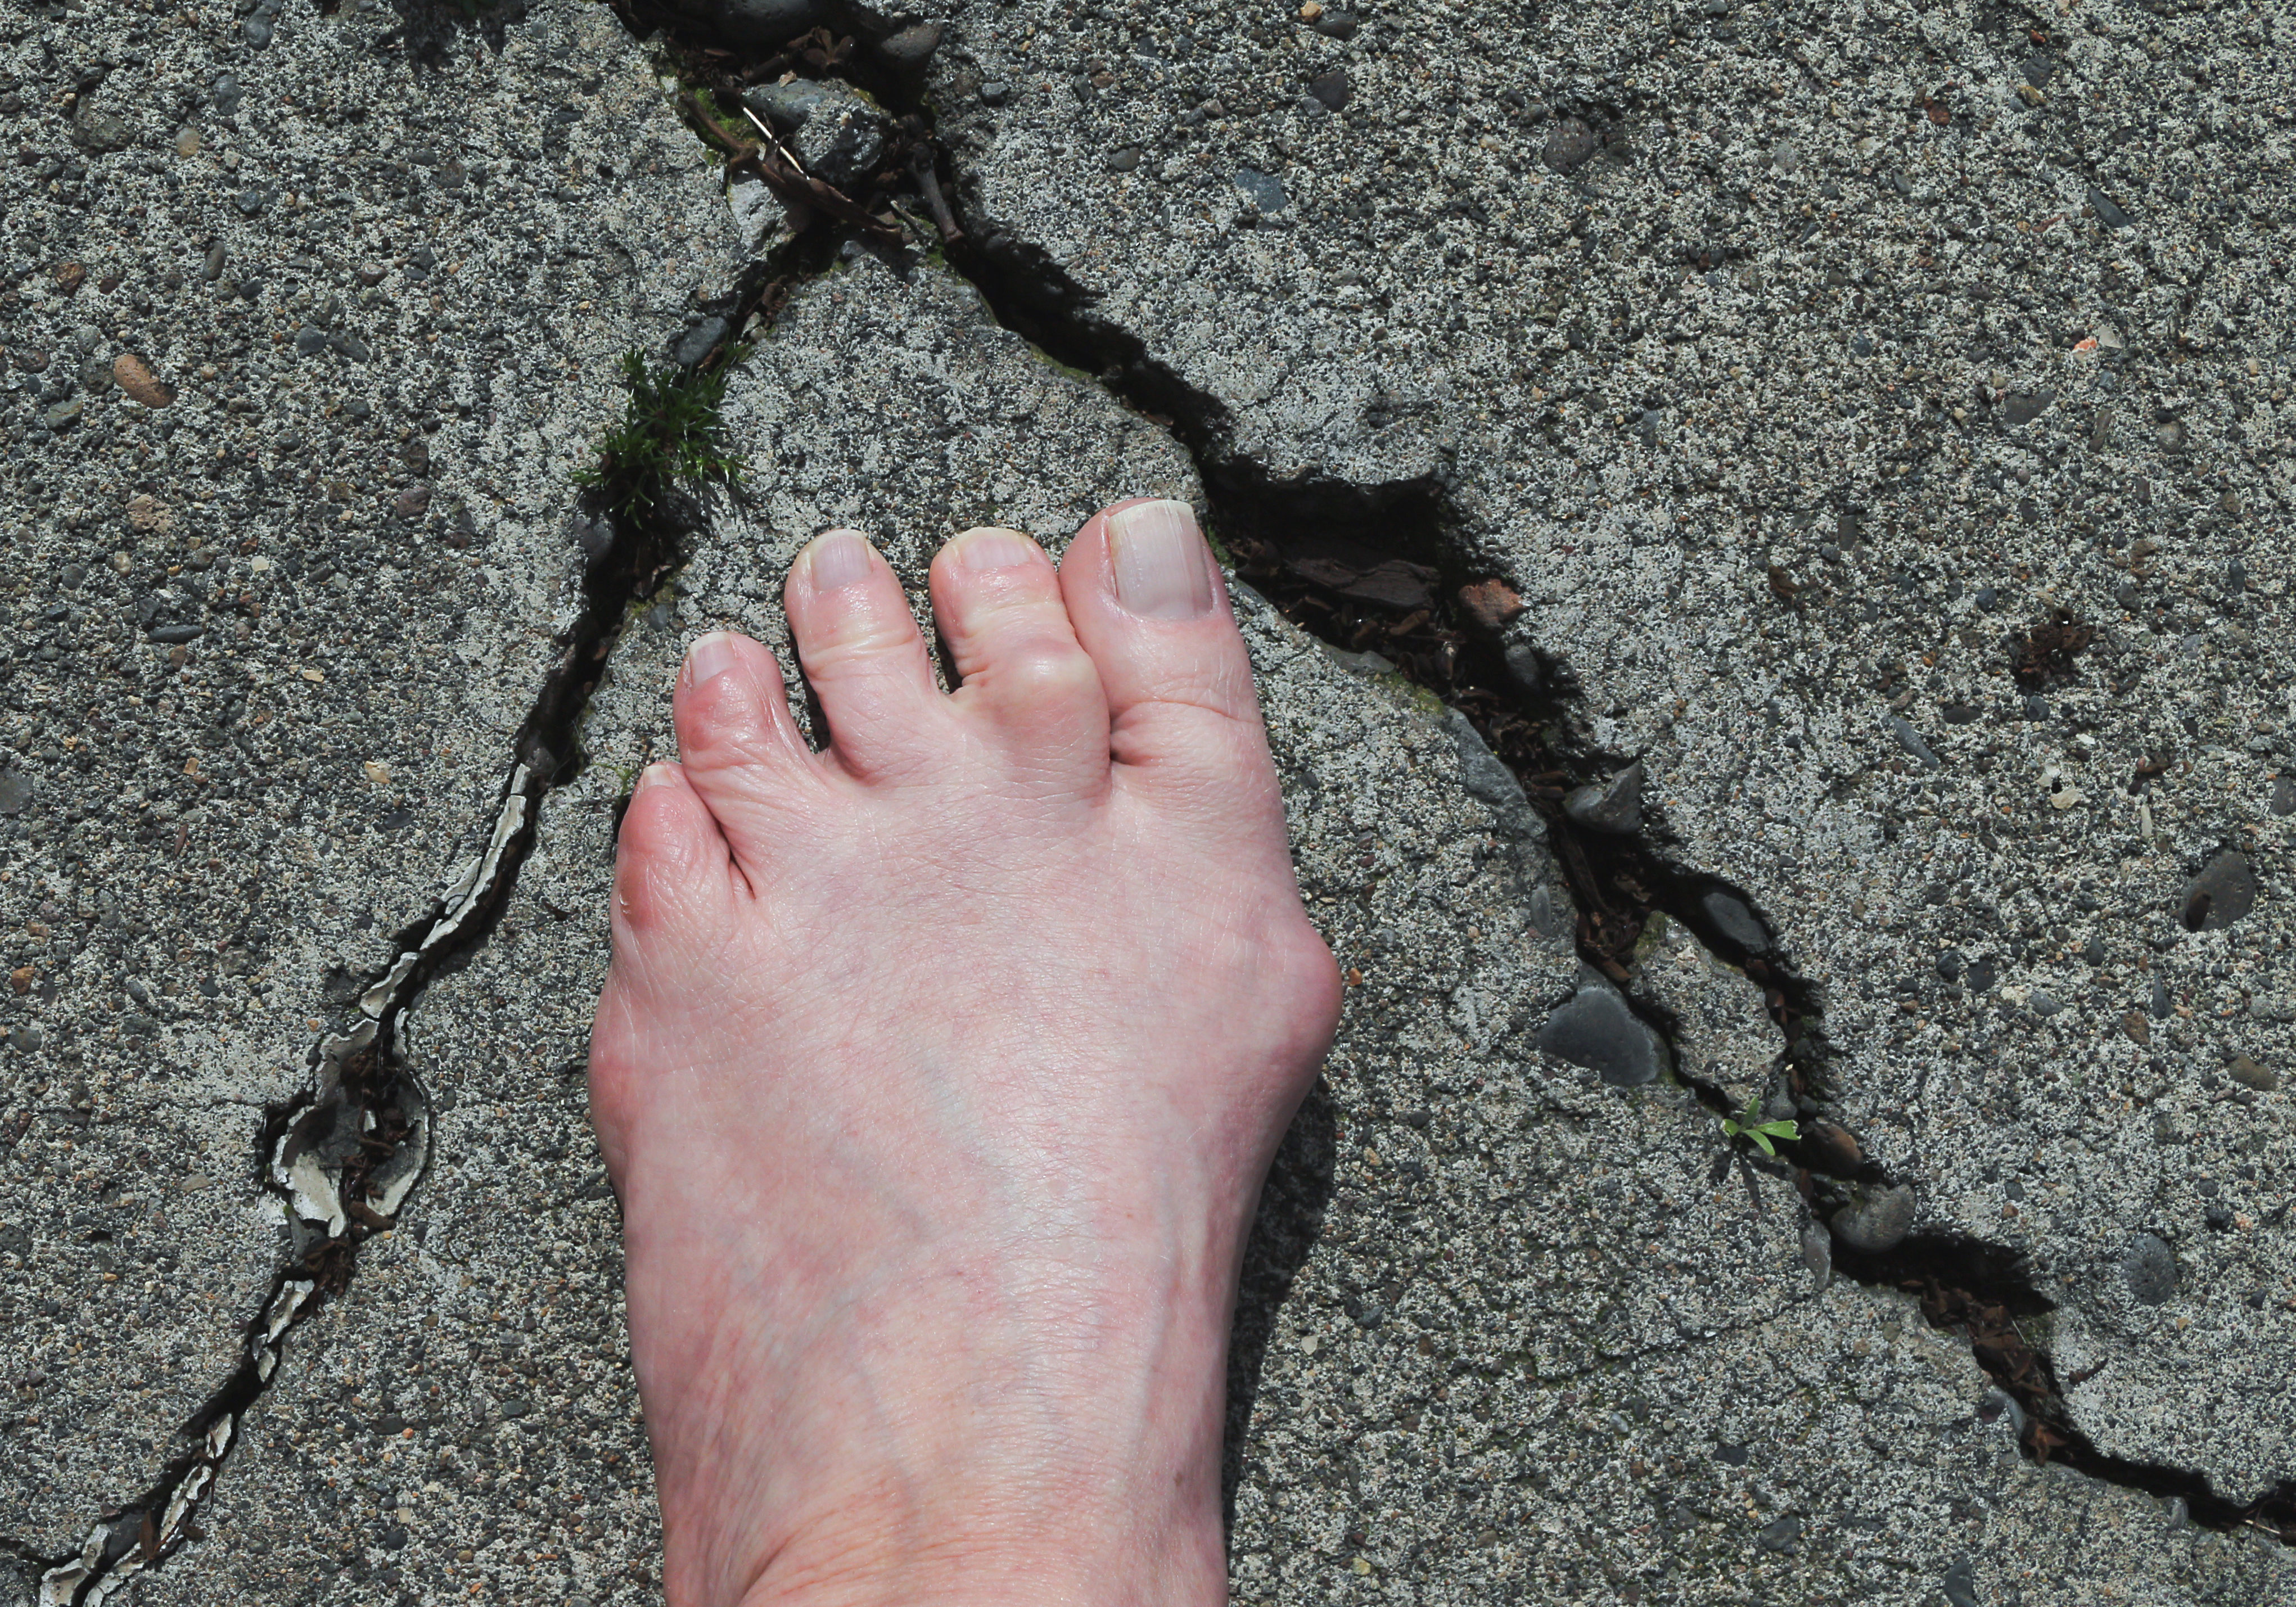 In Need of Repair, foot with bunion and hammer toe on a cracked concrete background.